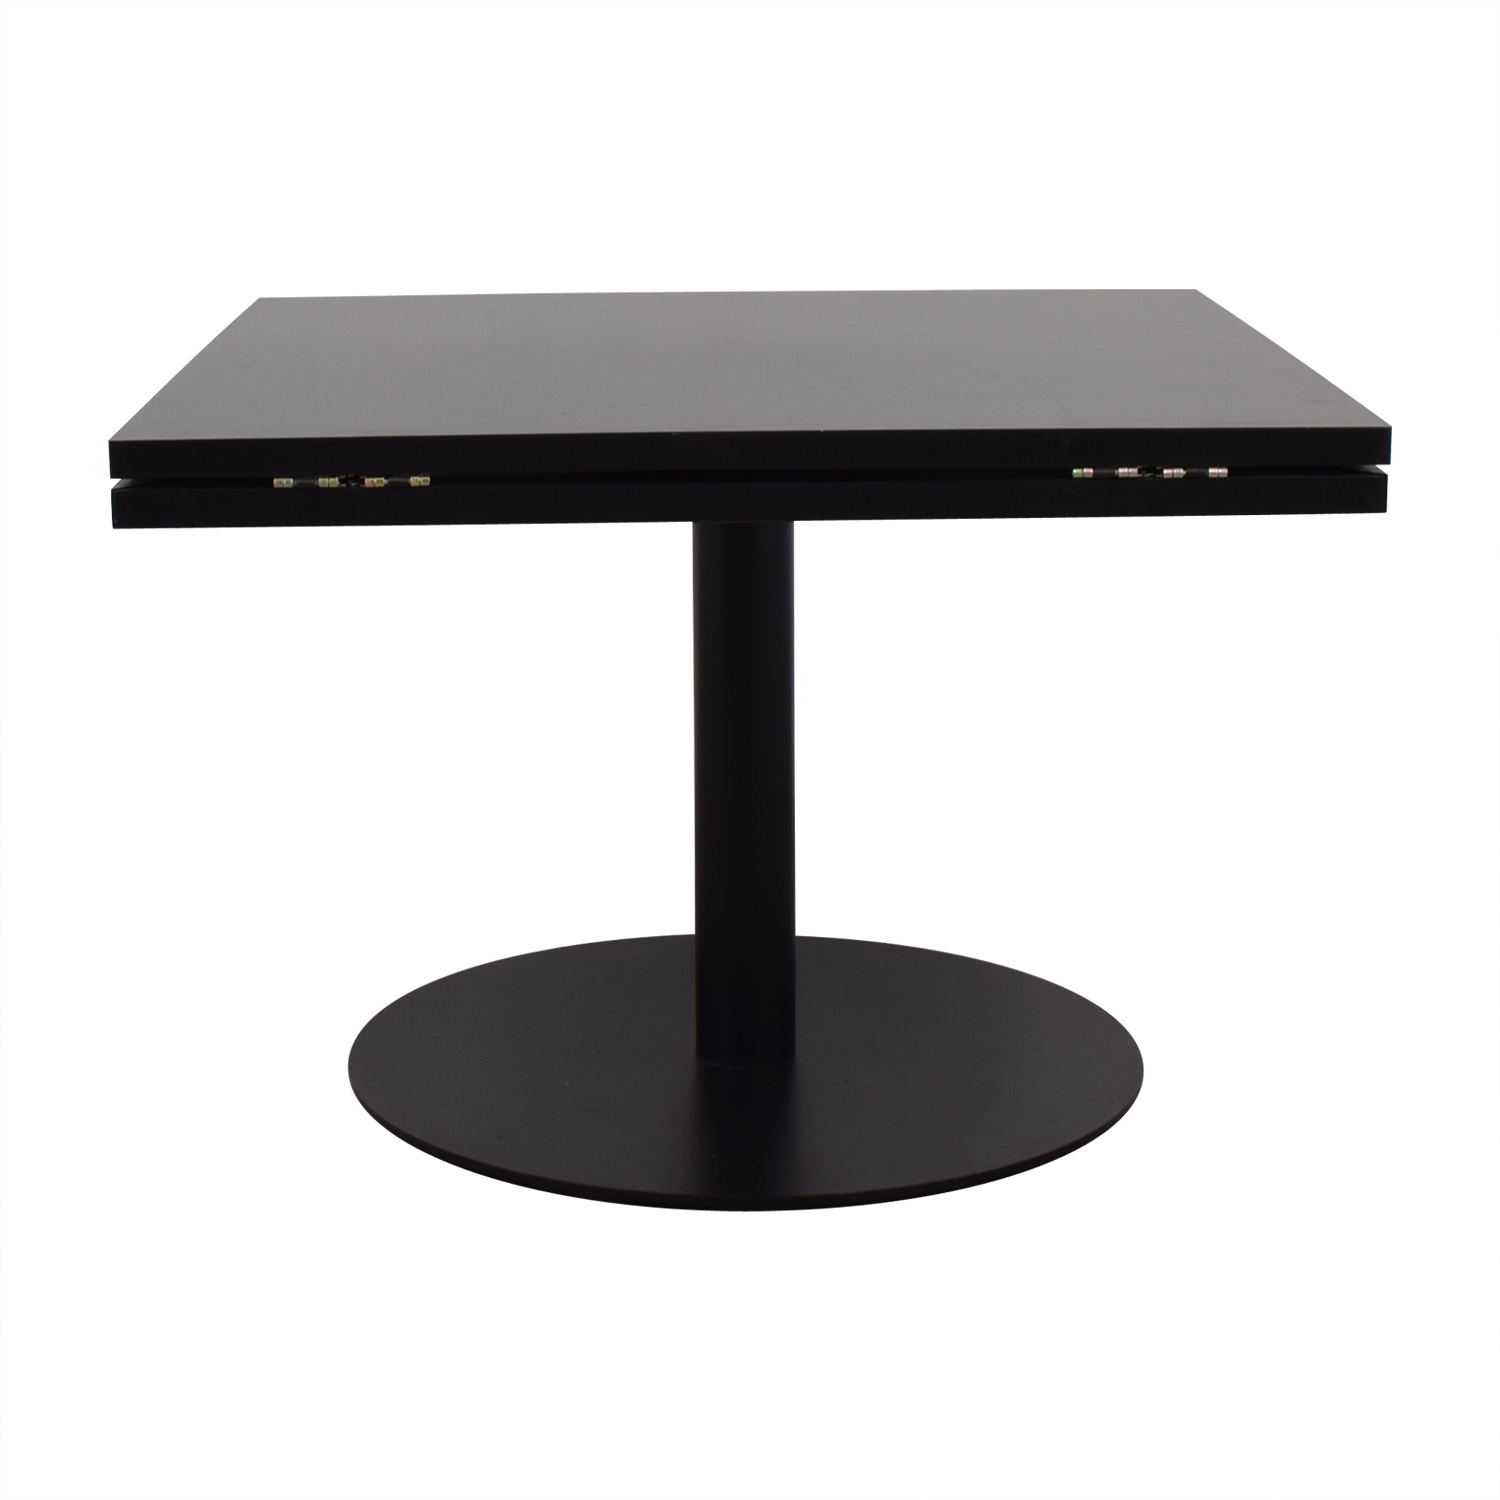 Black Square to Round Foldable Sides Table dimensions